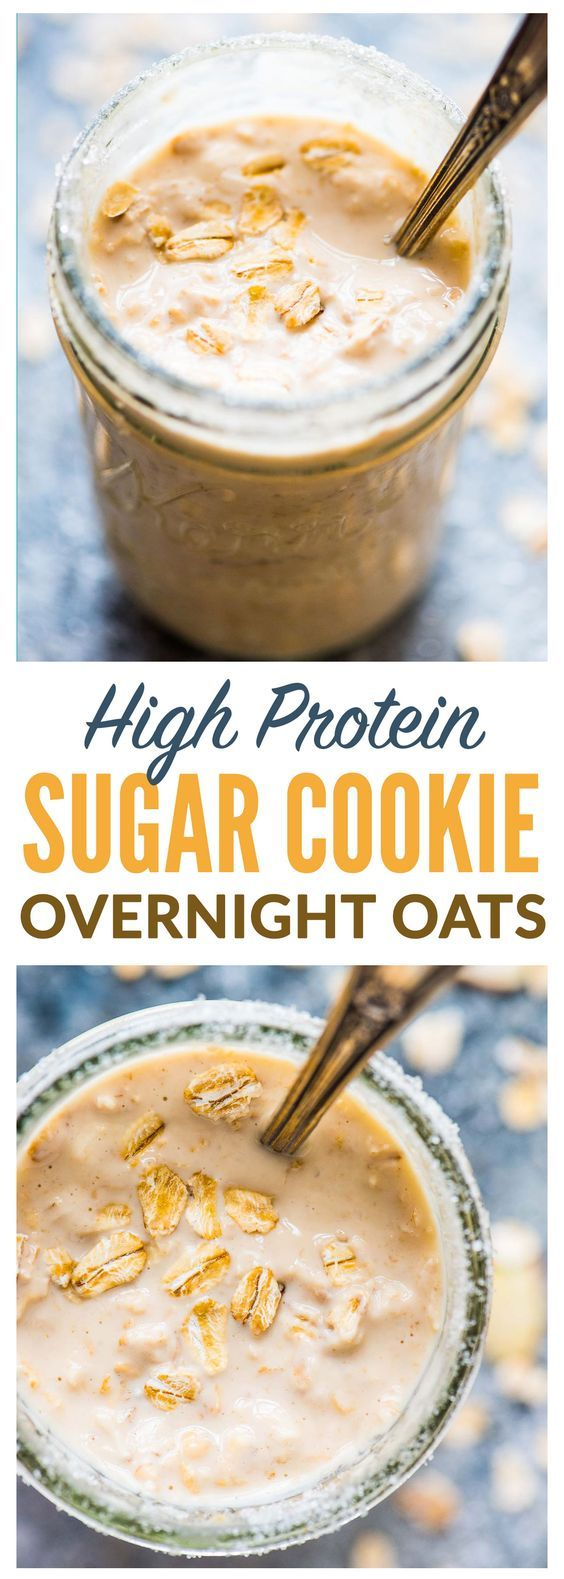 Sugar Cookie Overnight Protein Oatmeal. PACKED with 26 grams of protein and tastes like cookies! This high protein breakfast will keep you full all morning. Recipe at wellplated.com | @wellplated